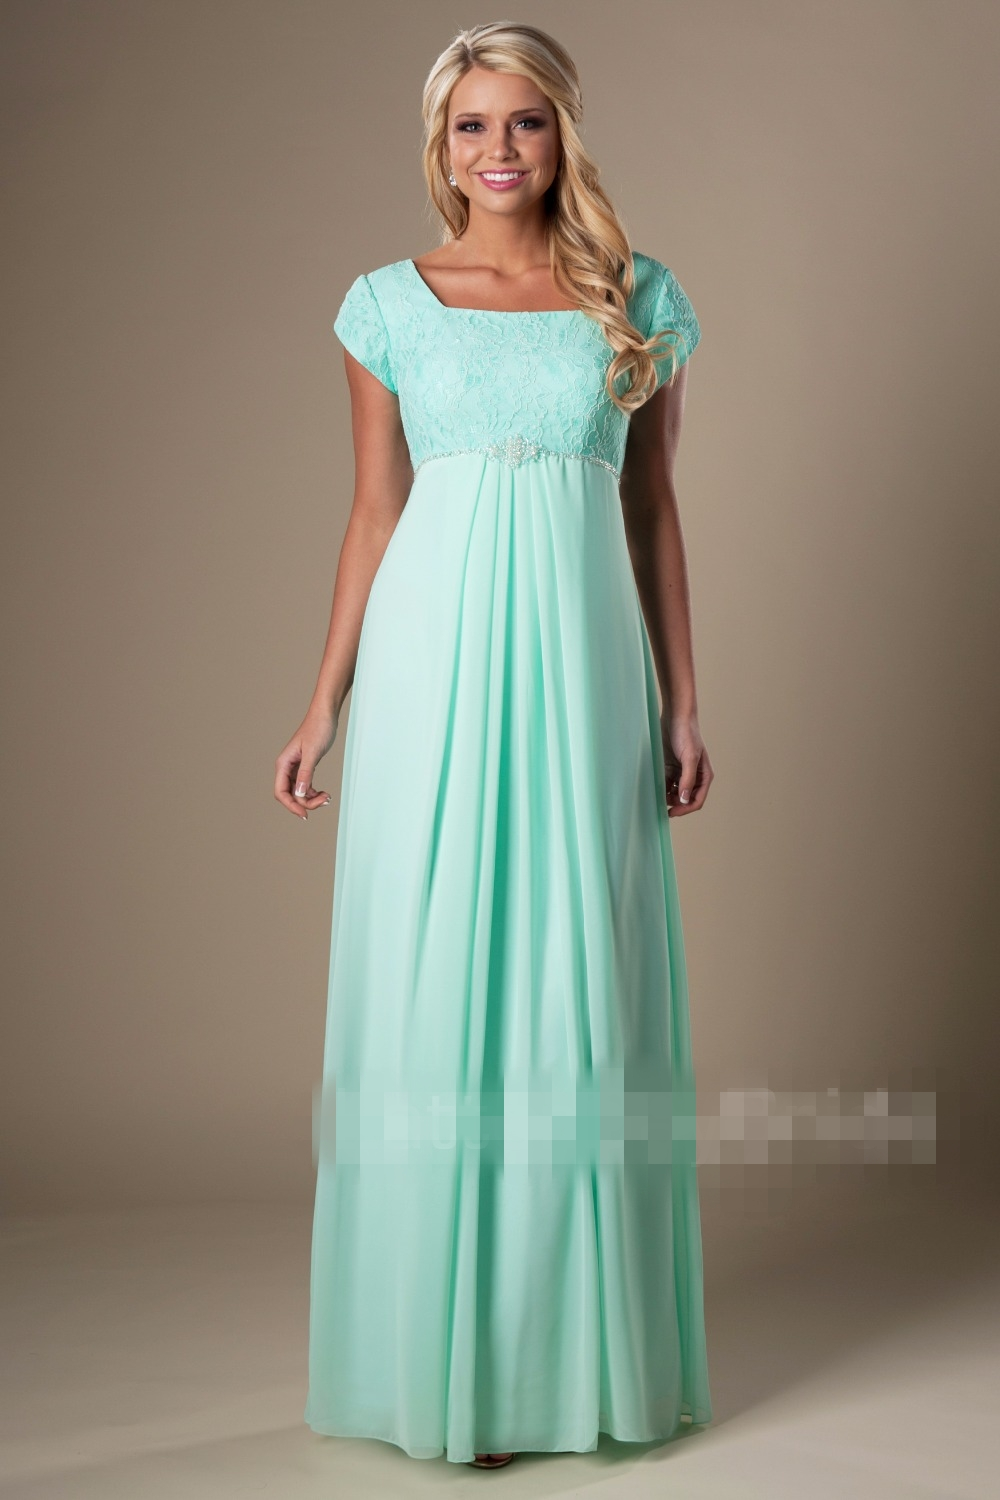 Compare prices on bridesmaid dresses for pregnant women online mint maternity modest bridesmaid dresses with sleeves long lace chiffon a line empire waist dresses ombrellifo Image collections